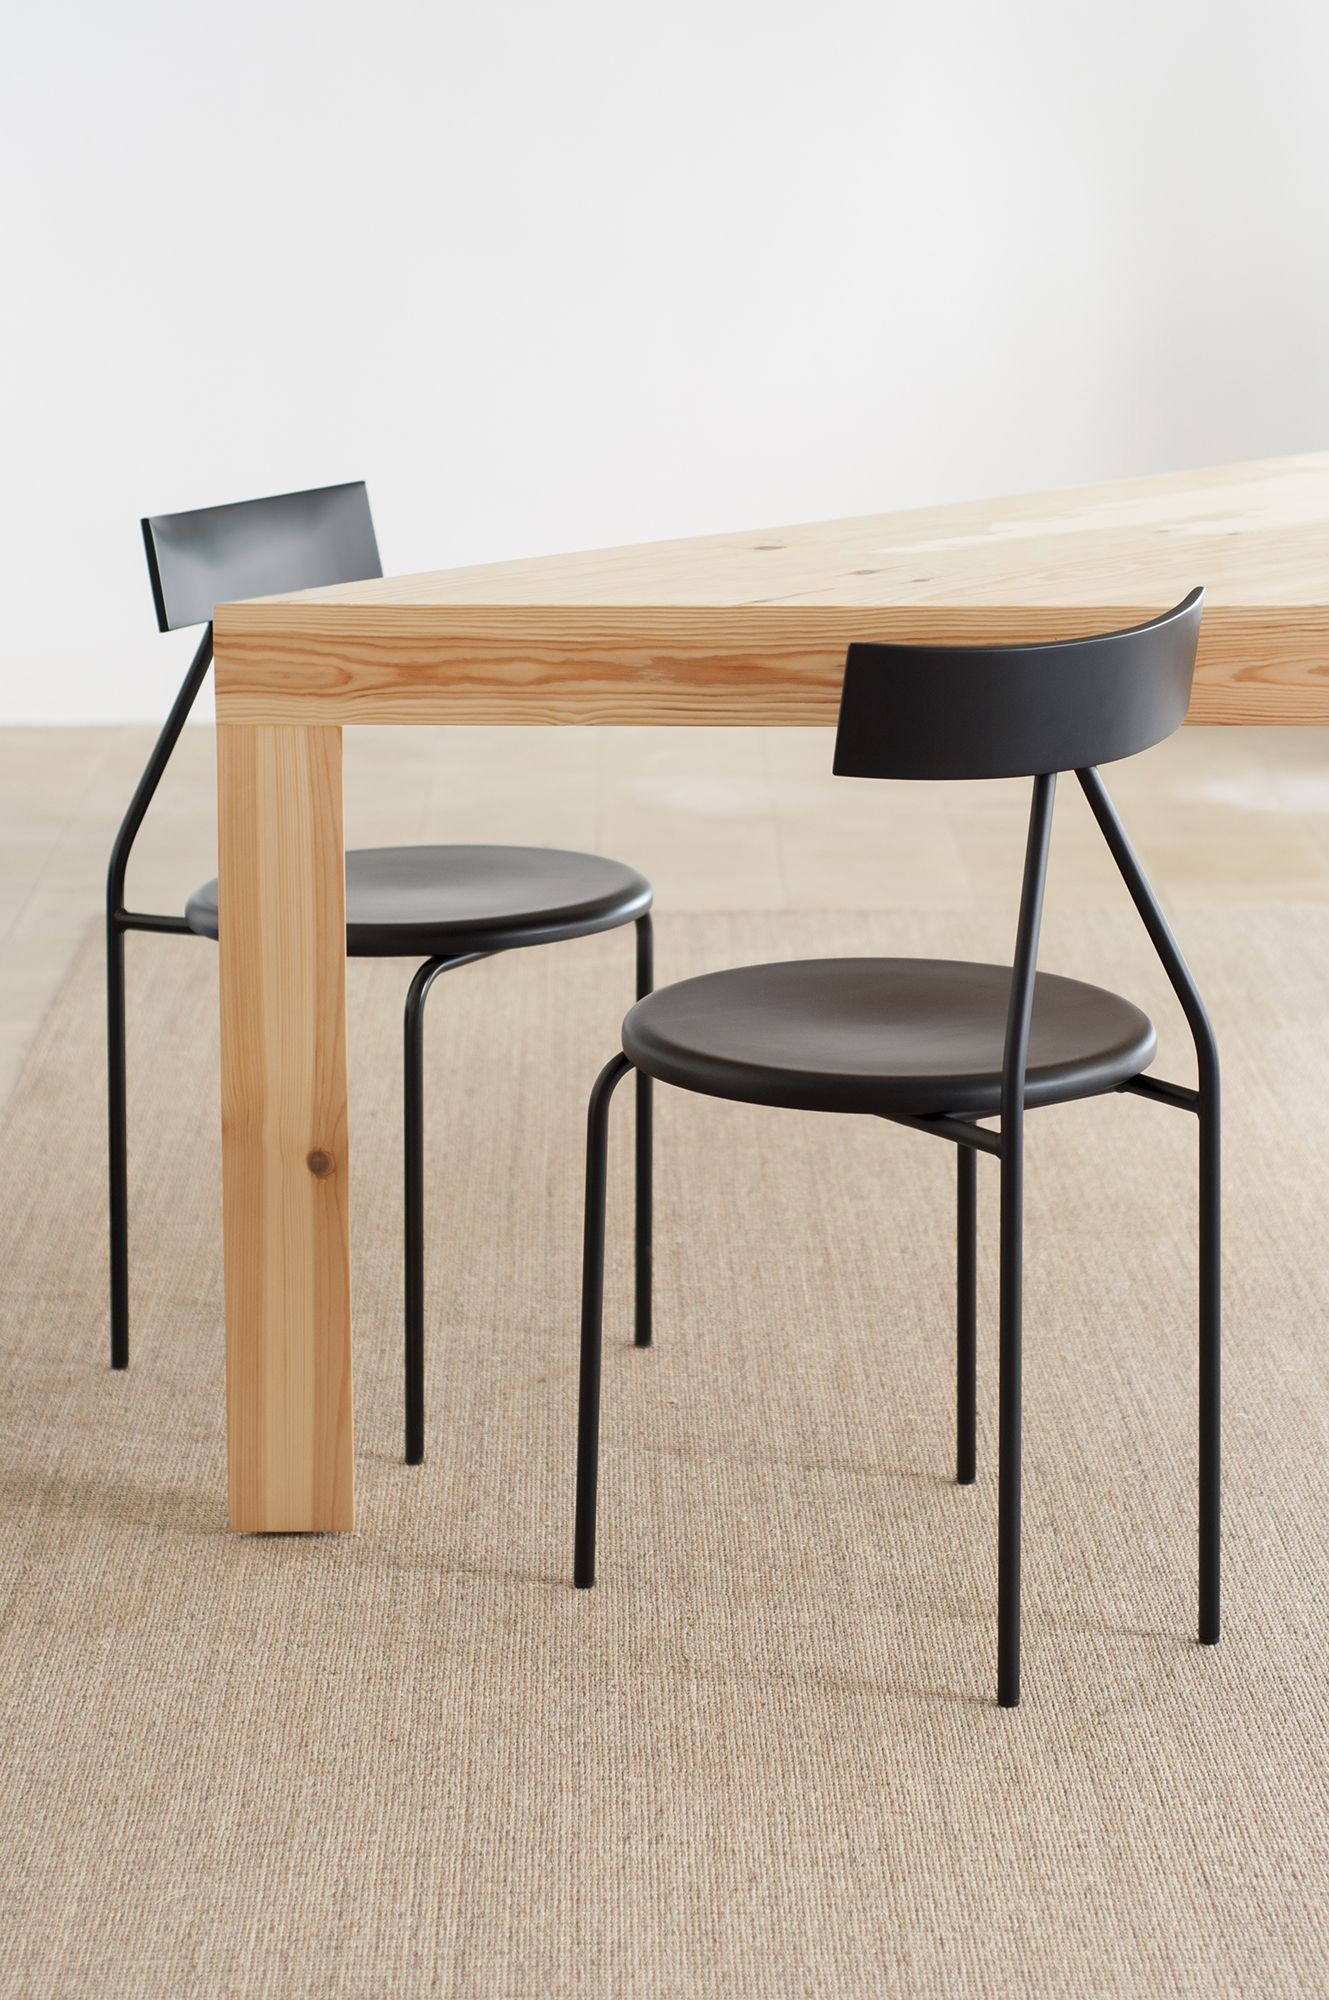 Gofi Chair Leibal Featuring Minimal And Functional